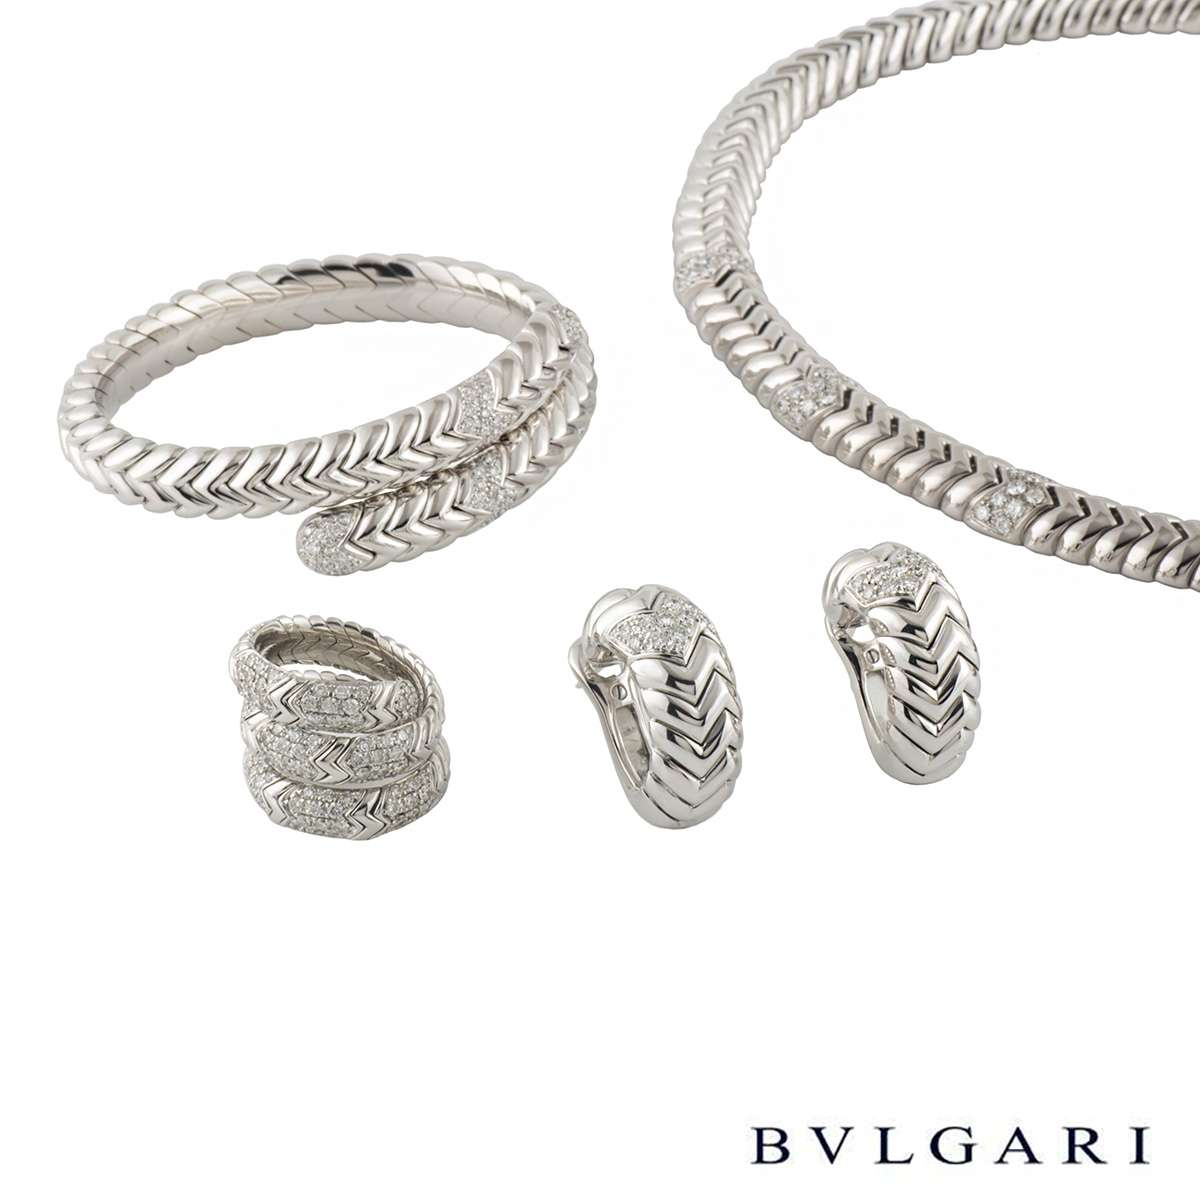 Bvlgari White Gold Spiga Diamond Jewellery Suite